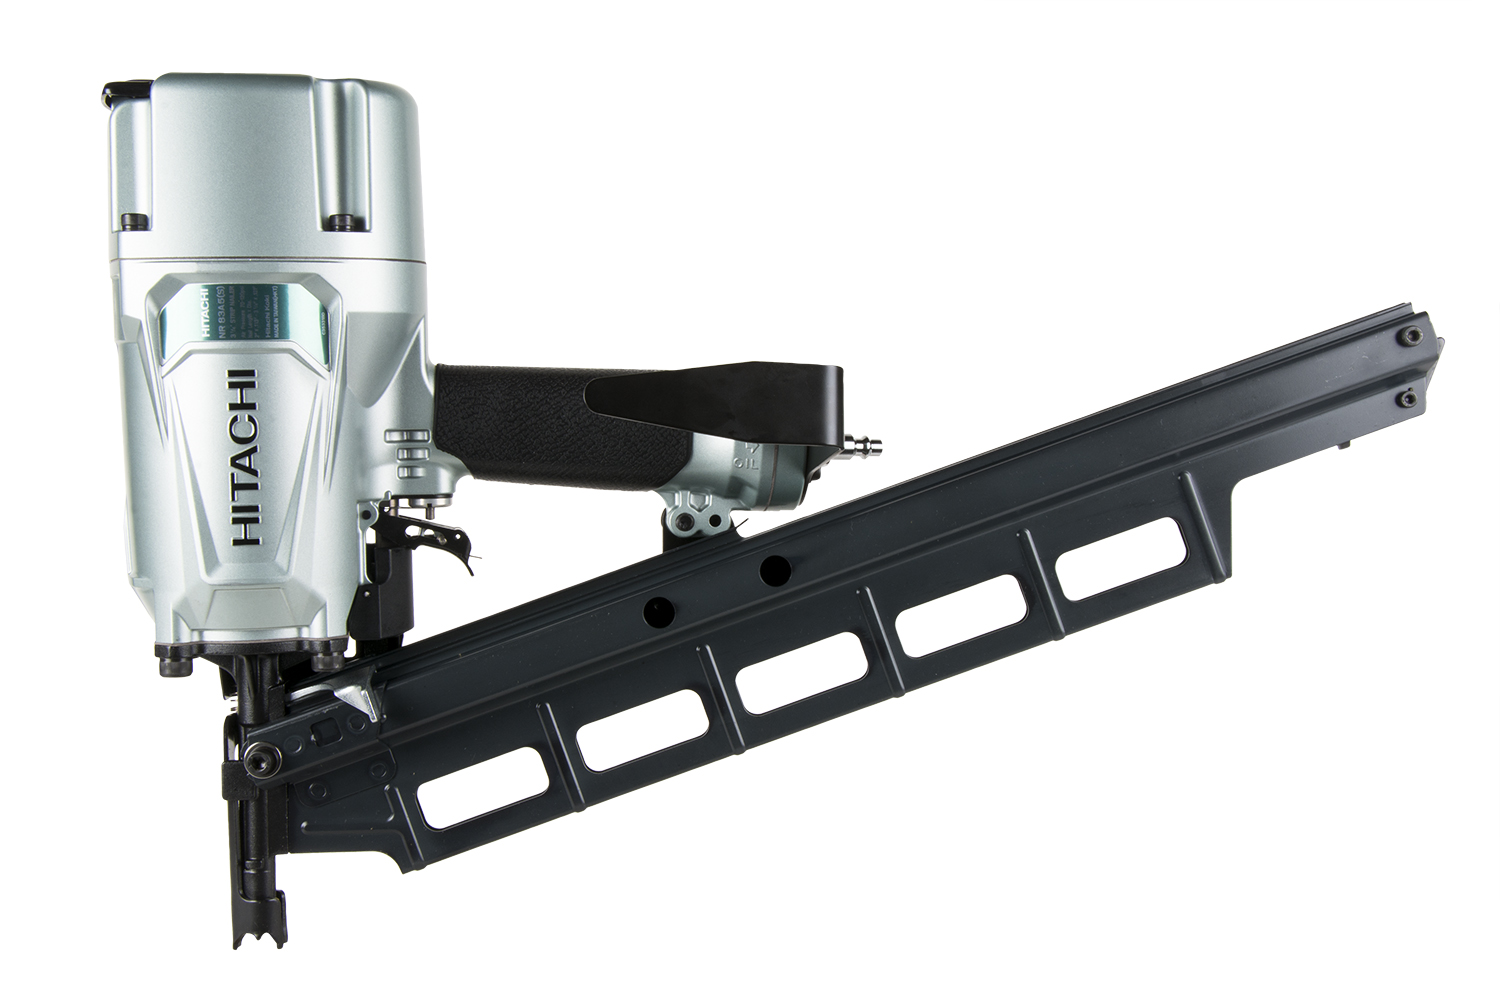 Hitachi A5 Series Framing Nailers Contractor Supply Magazine